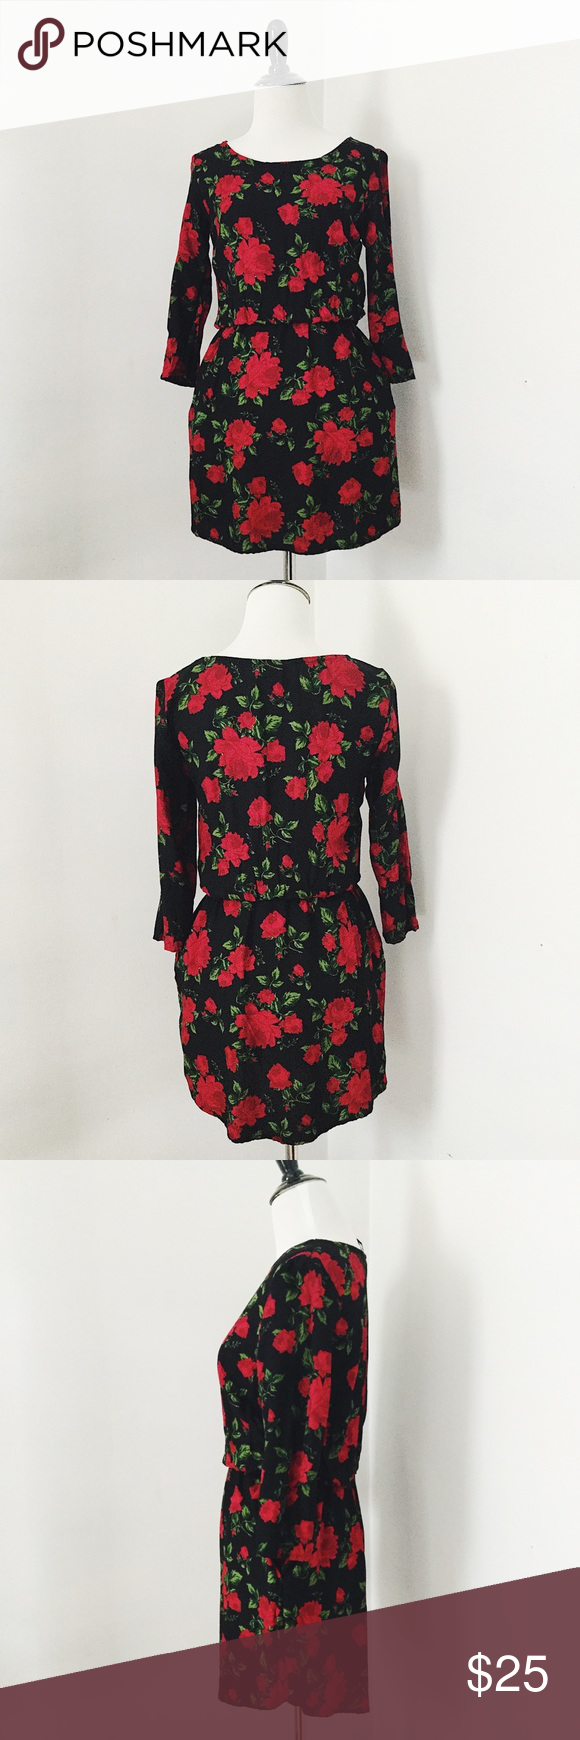 Hum black floral mini dress